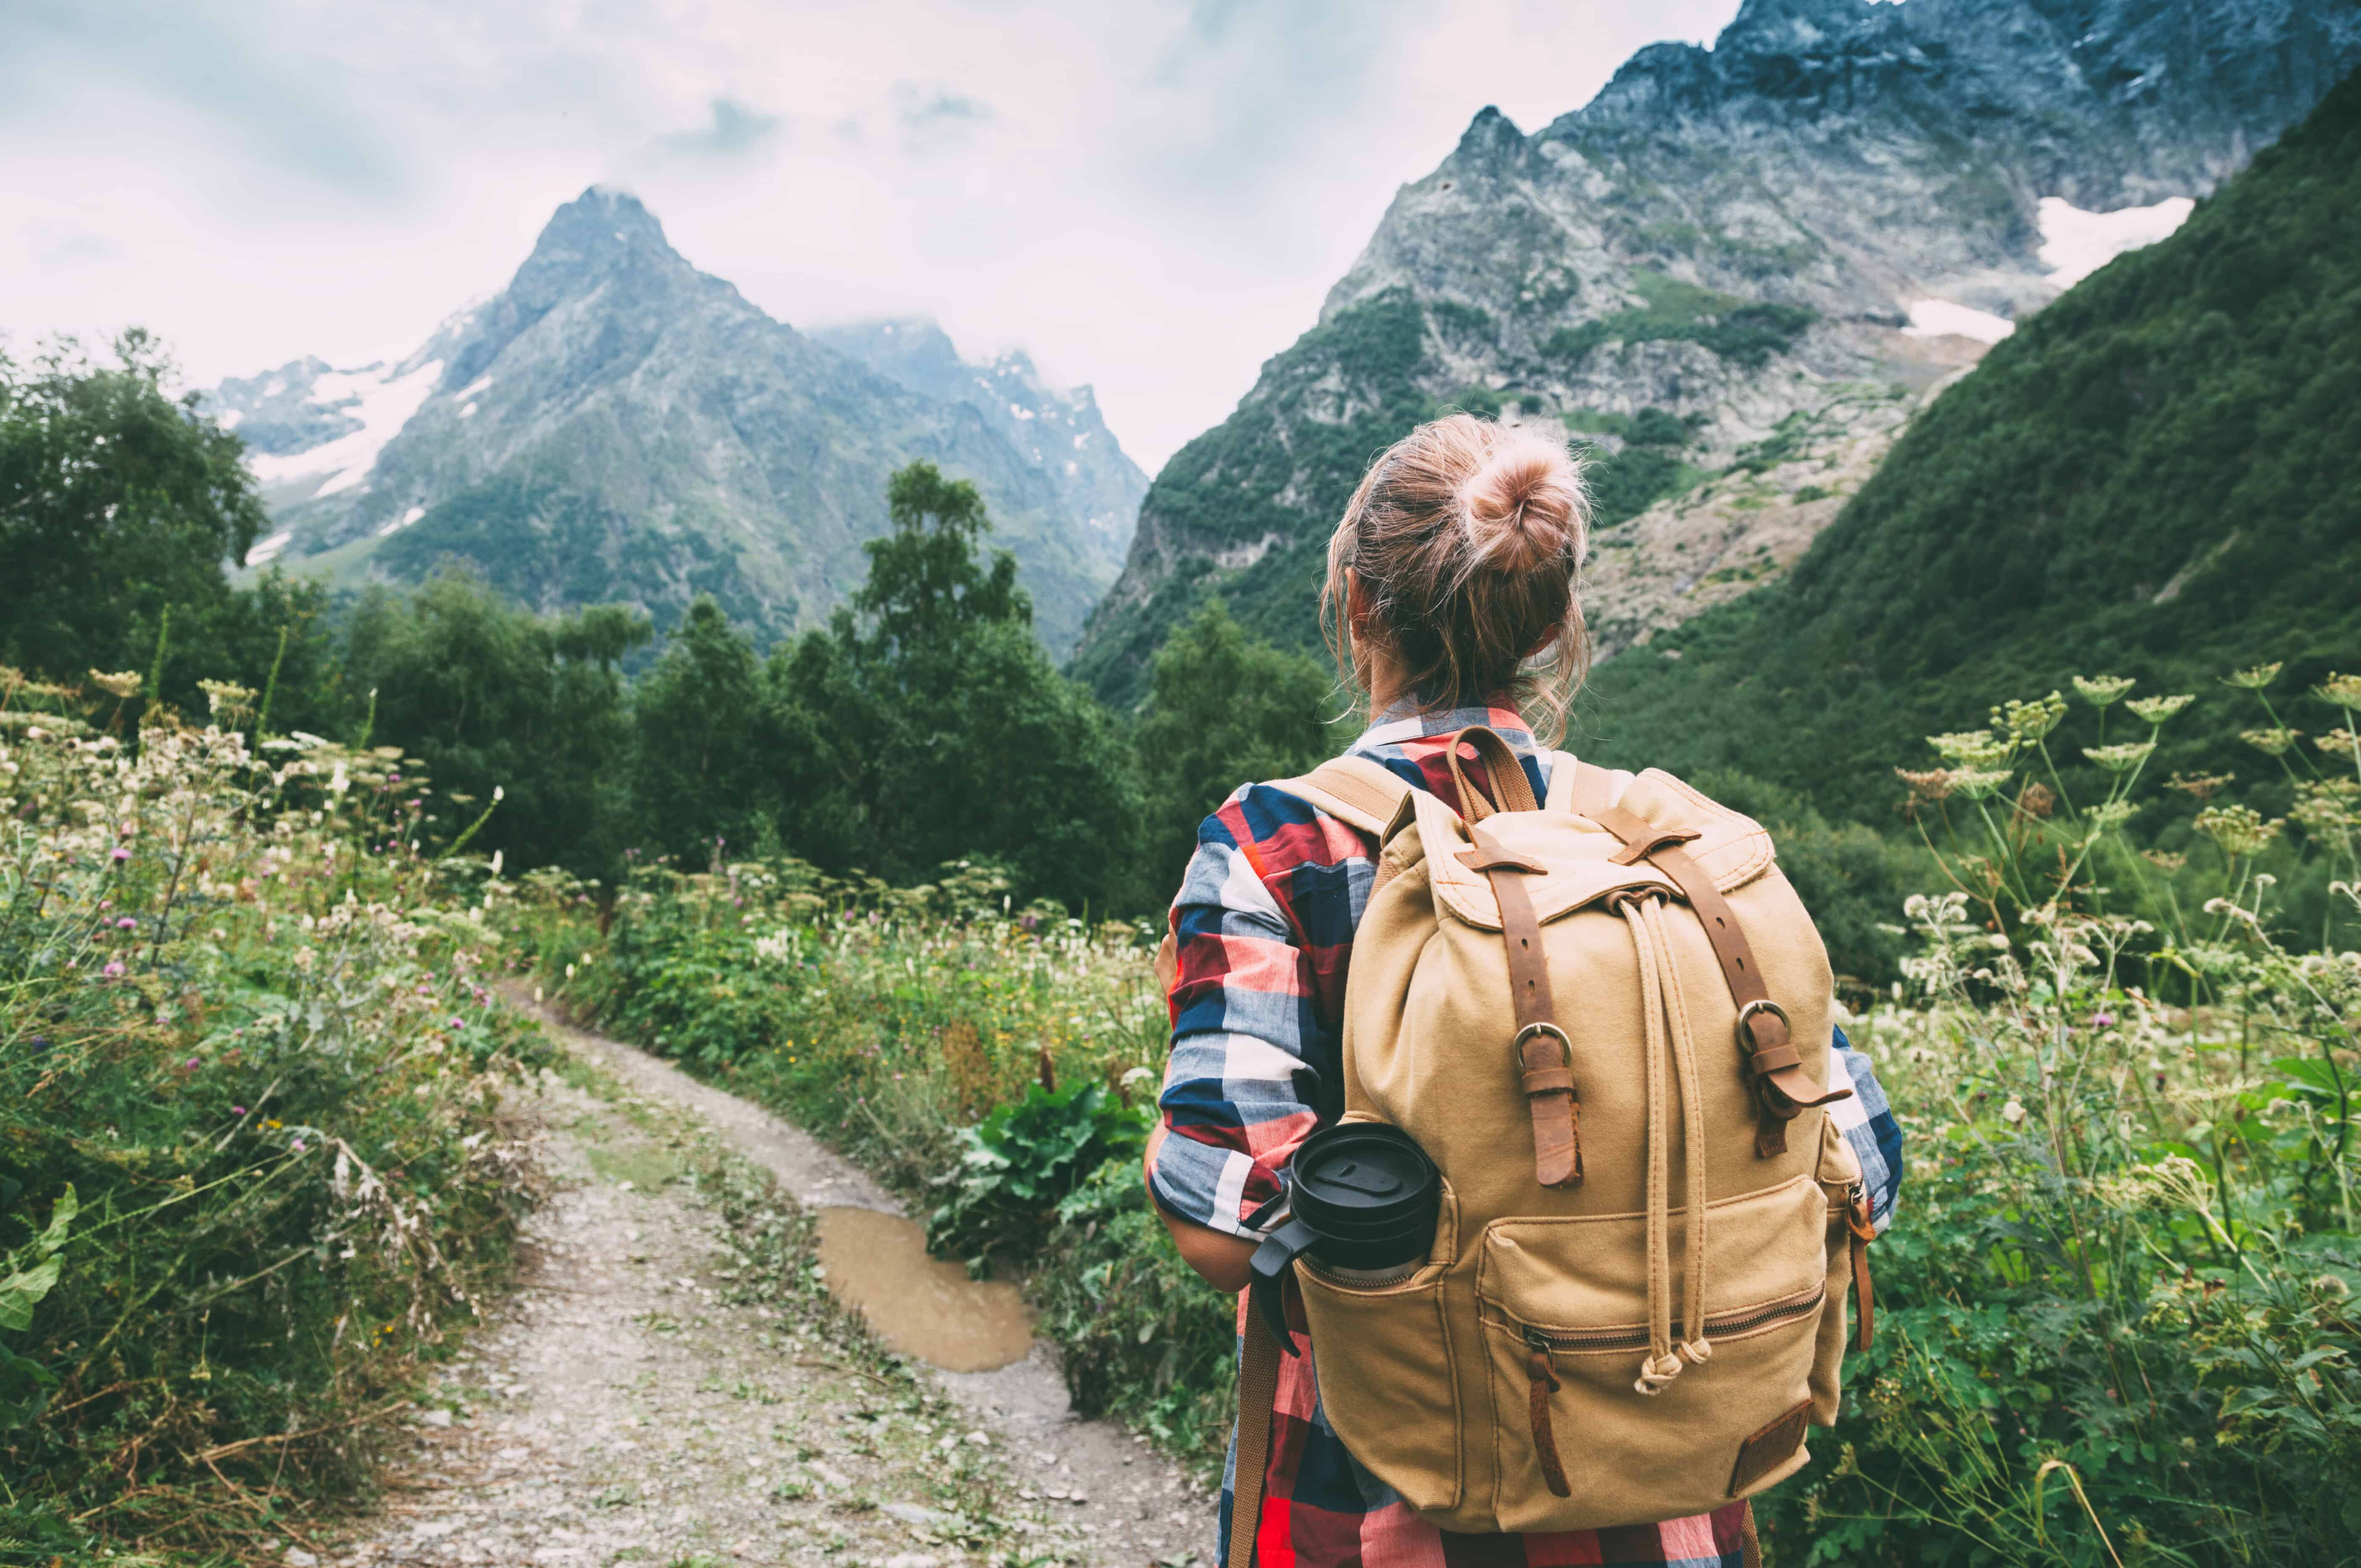 Ted Talks About Travel: Discover the Top 5 Travel Videos